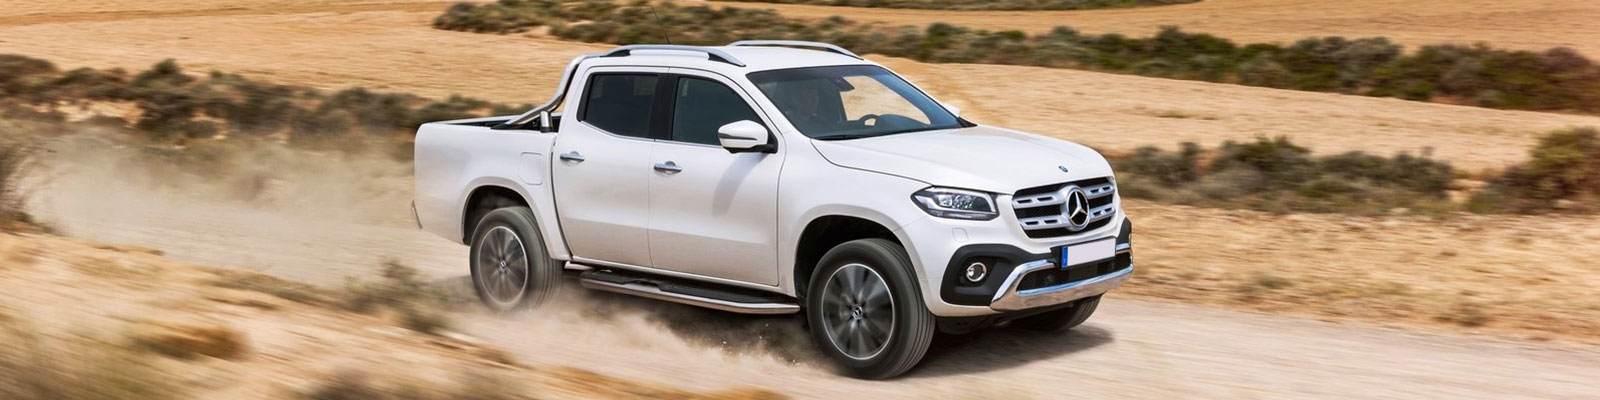 Mercedes Benz X Class 2017 On Accessories 4x4at